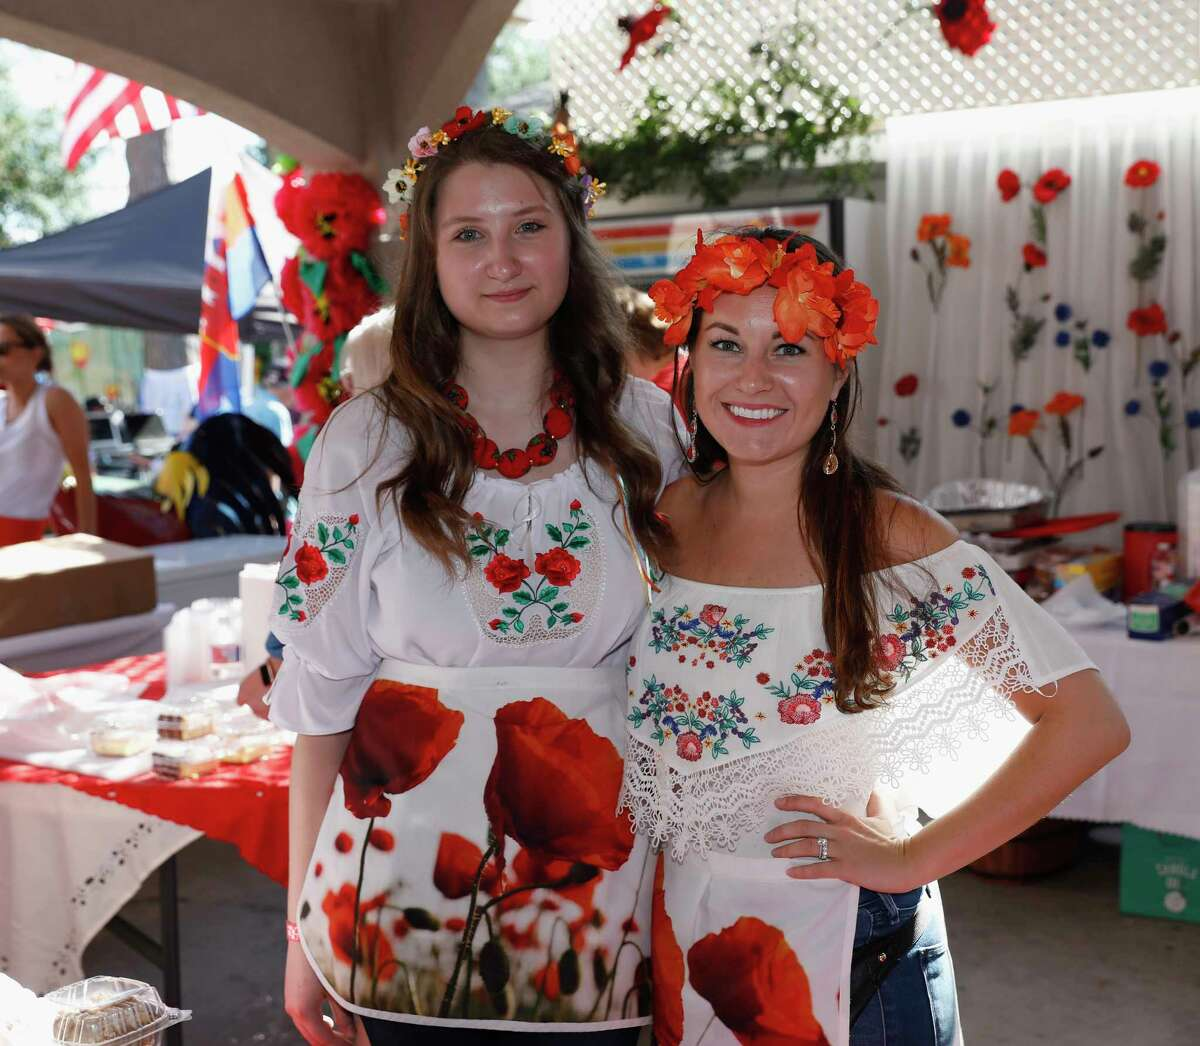 Marzena Nowobilski (left) and Jola Paz (right) serve desserts during the Houston Polish Festival at Our Lady of Czestochowa Parish in Houston, TX on Saturday, May 5, 2018.